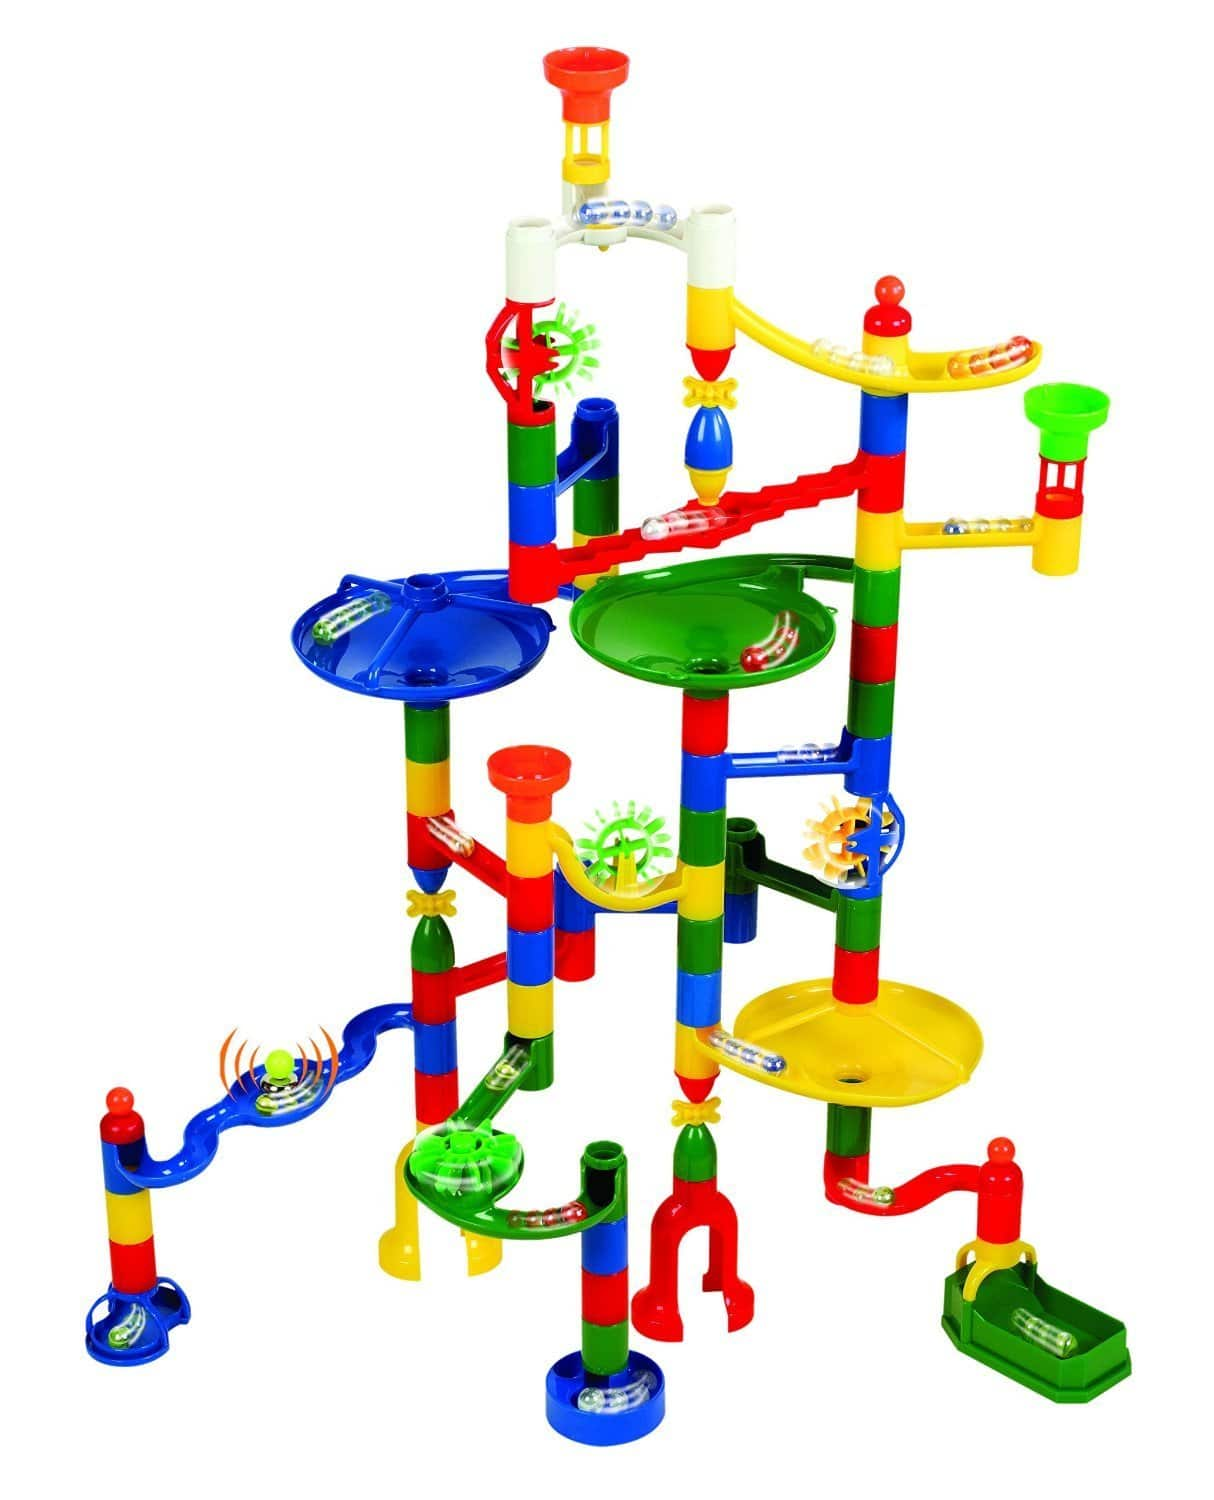 Marble Runs for 25% off for Black Friday!